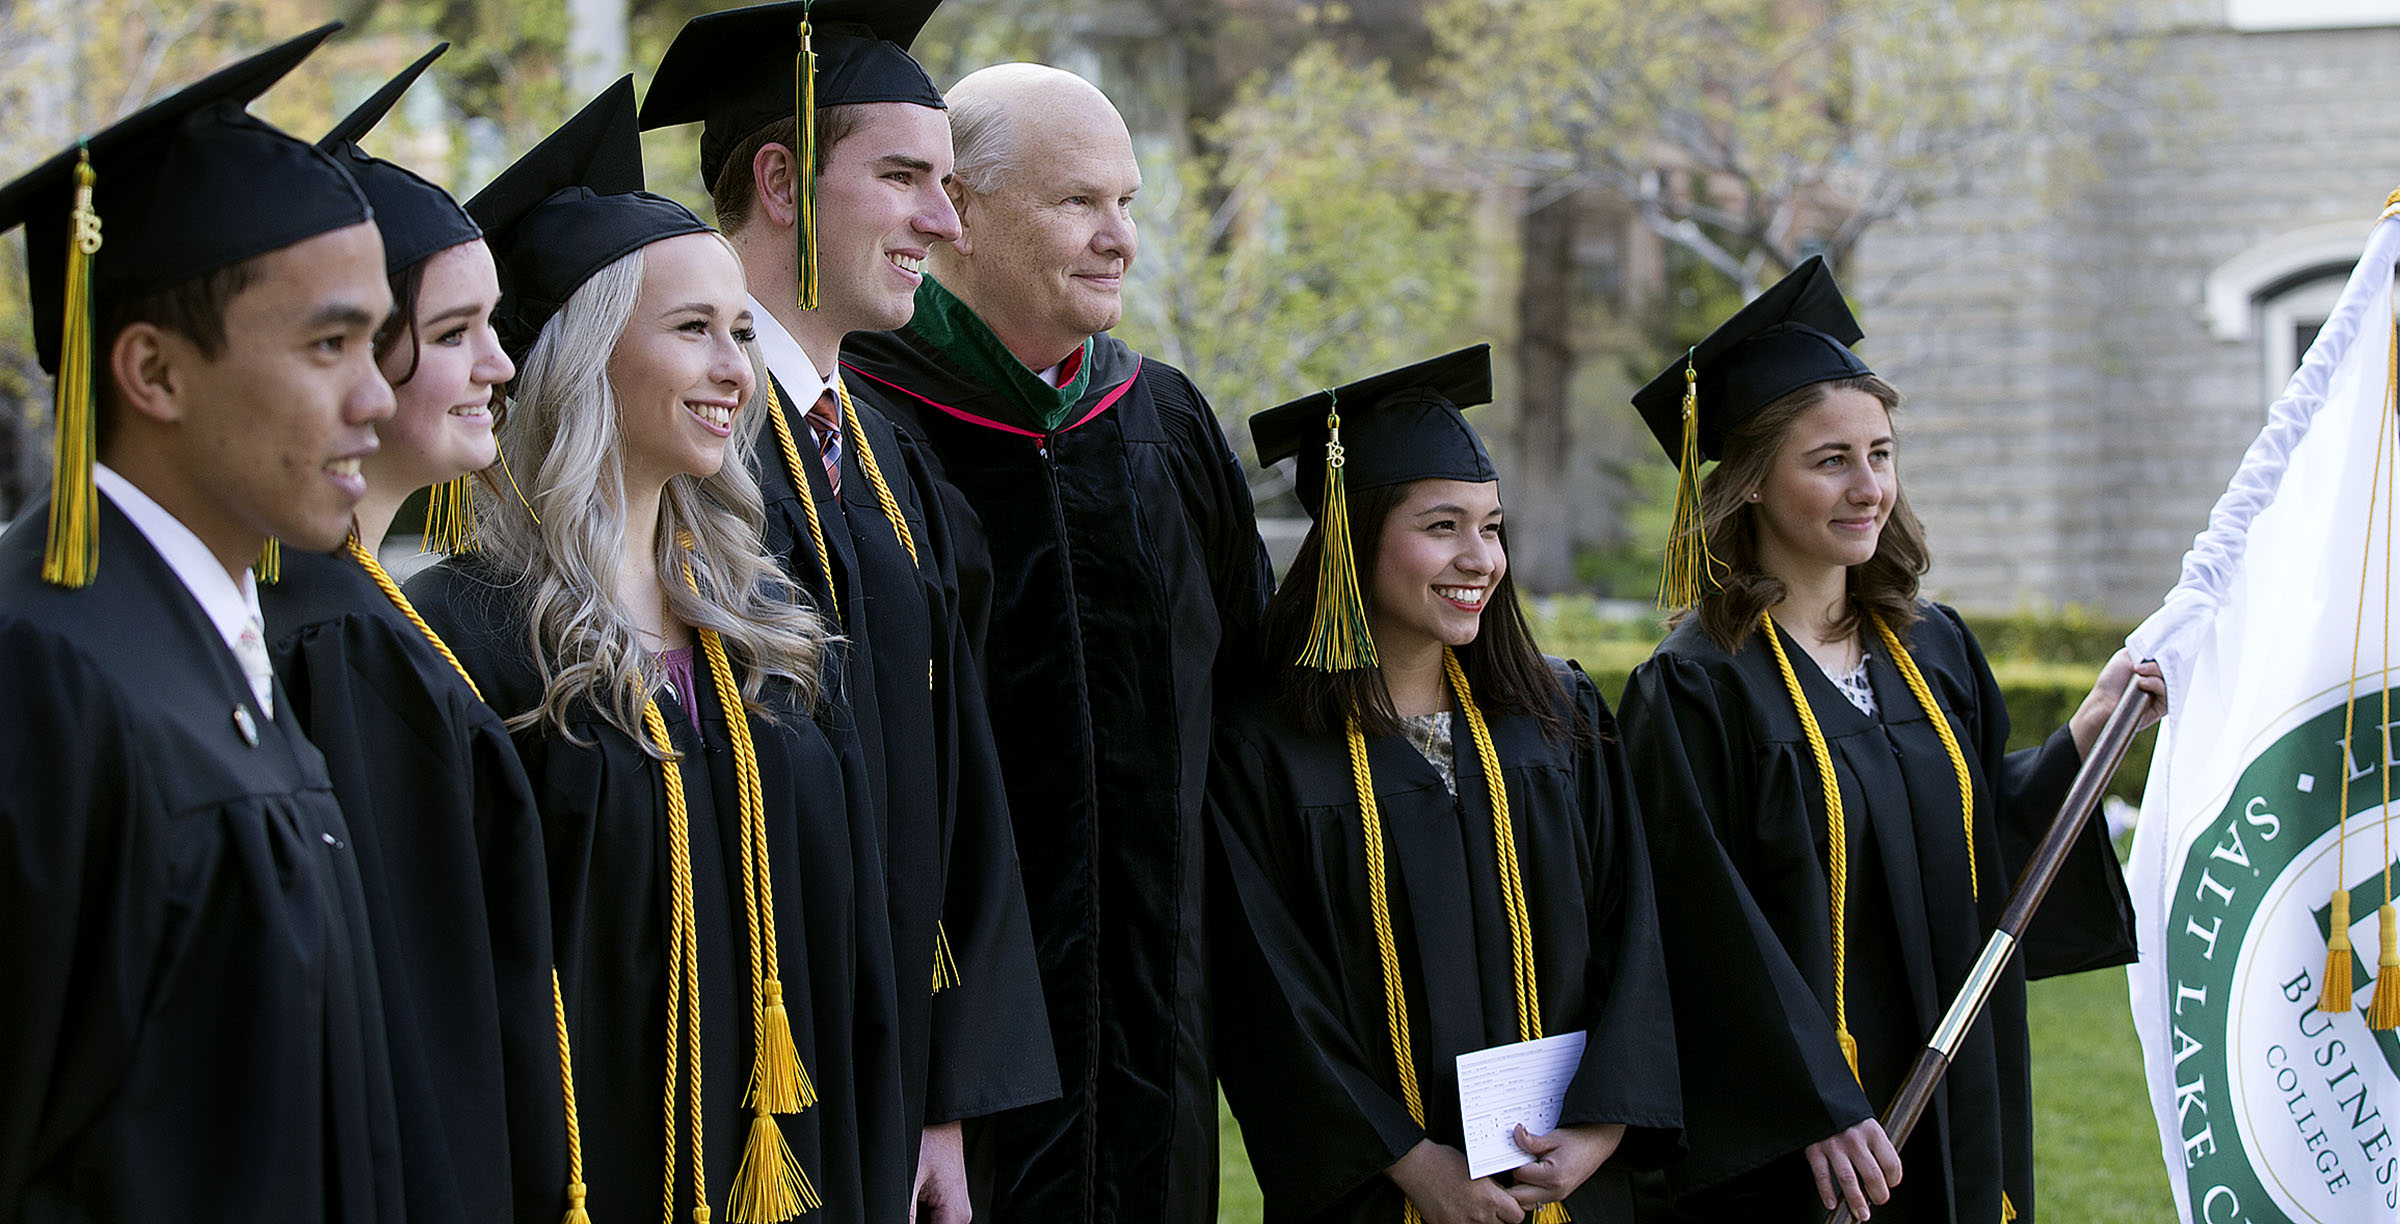 Elder Dale G. Renlund is photographed with students before the LDS Business College graduation at Temple Square in Salt Lake City on Friday, April 13, 2018.